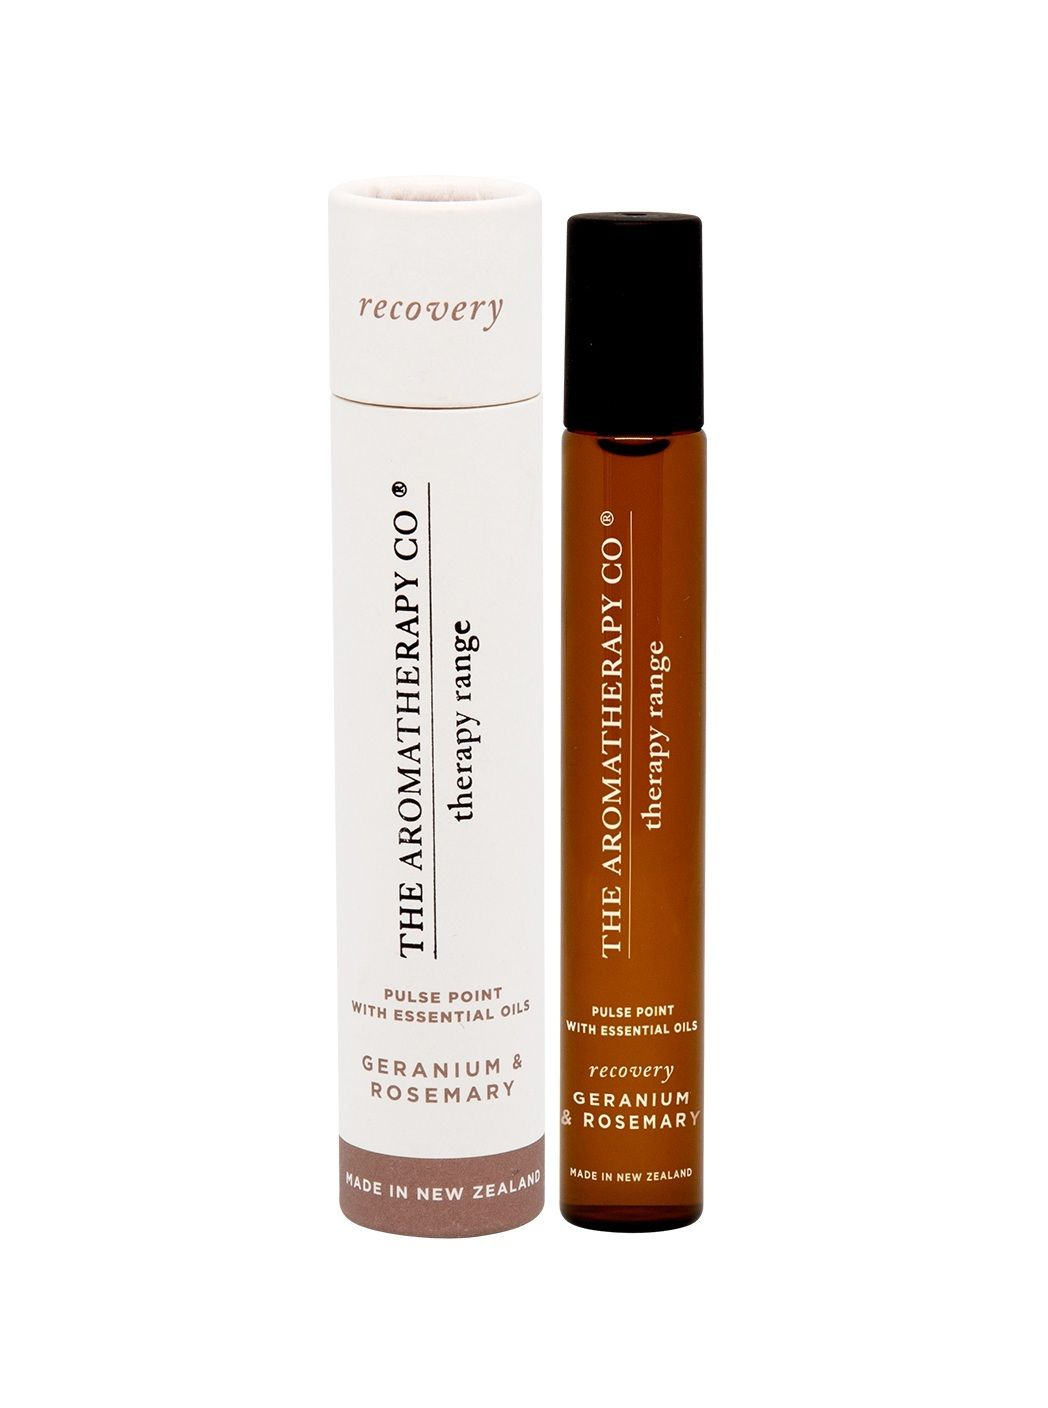 The Aromatherapy Co - Therapy Pulse Point 15ml - Recovery - last minute gift idea - melbourne